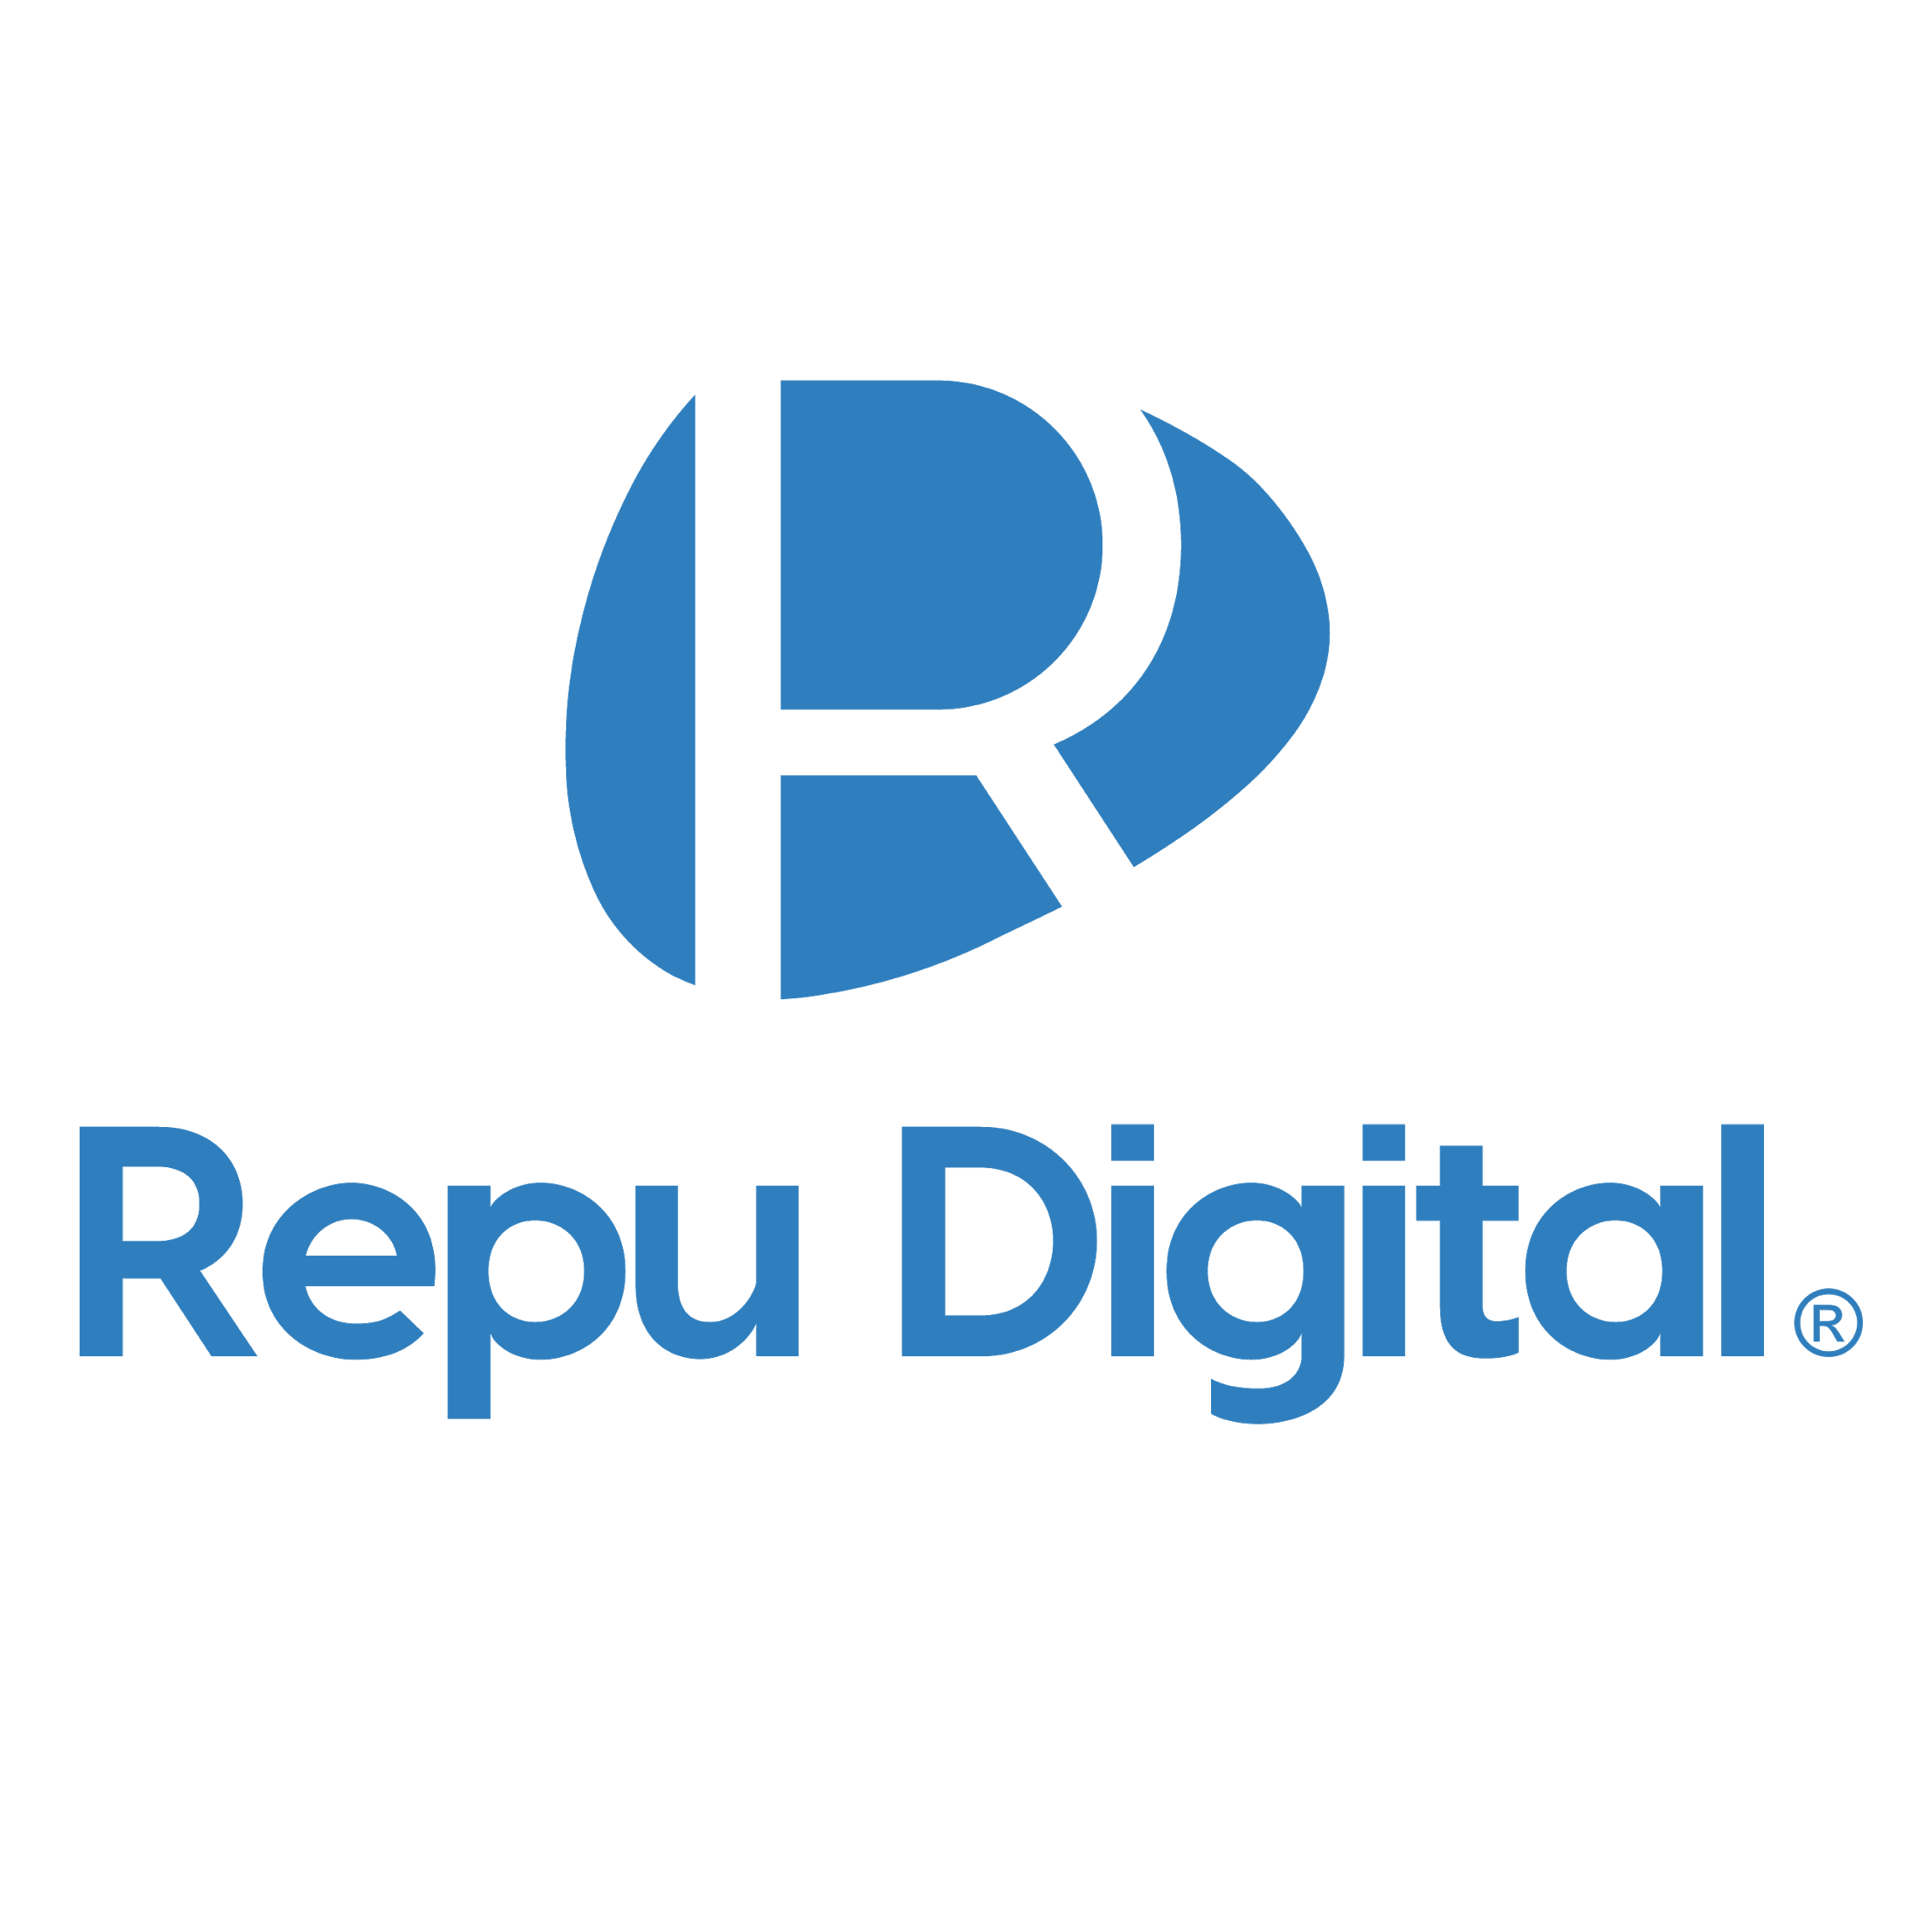 Repu Digital logo